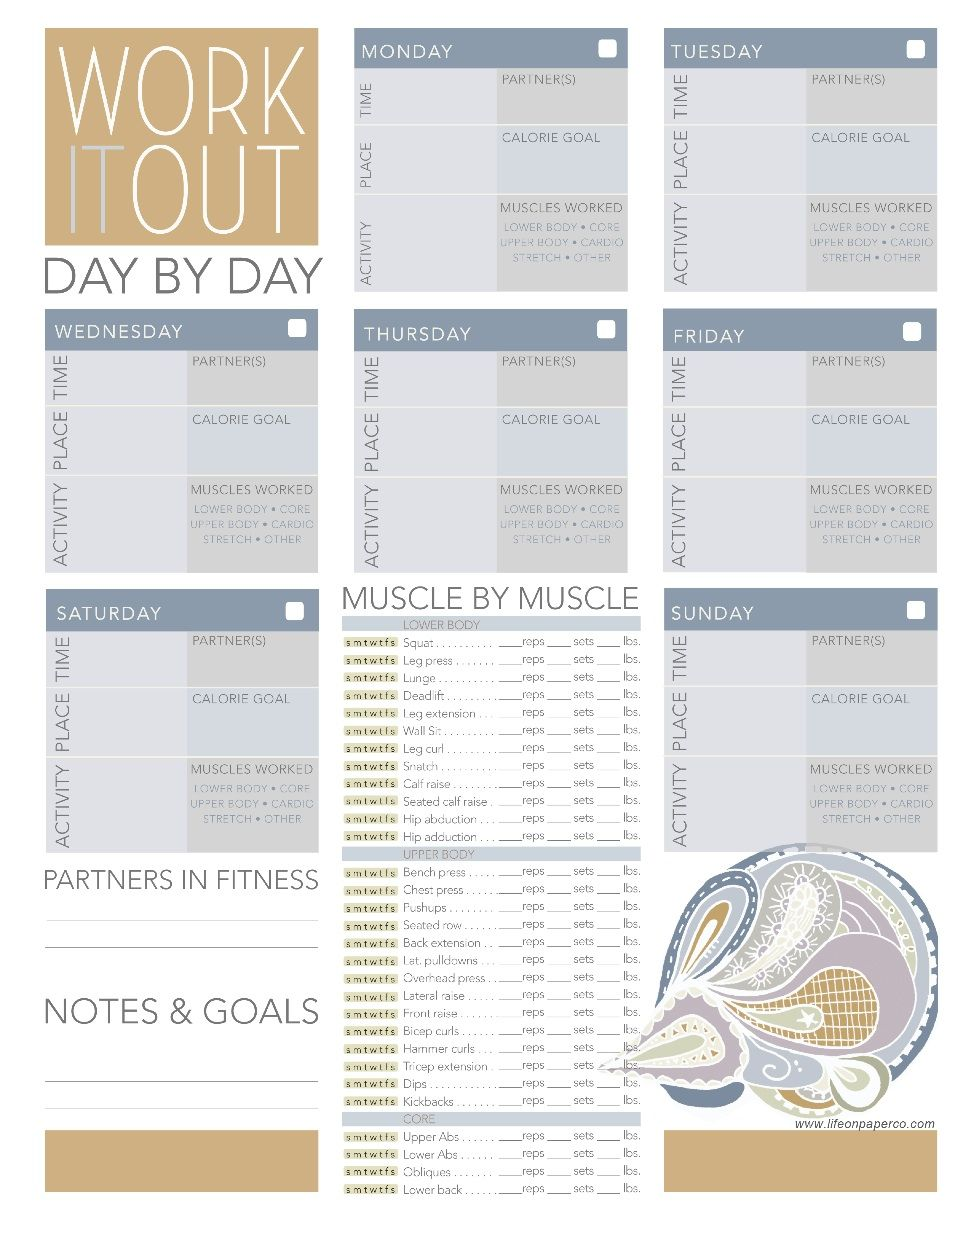 Free Worksheets pdf files to help you organize your life weekly – Weekly Exercise Plans